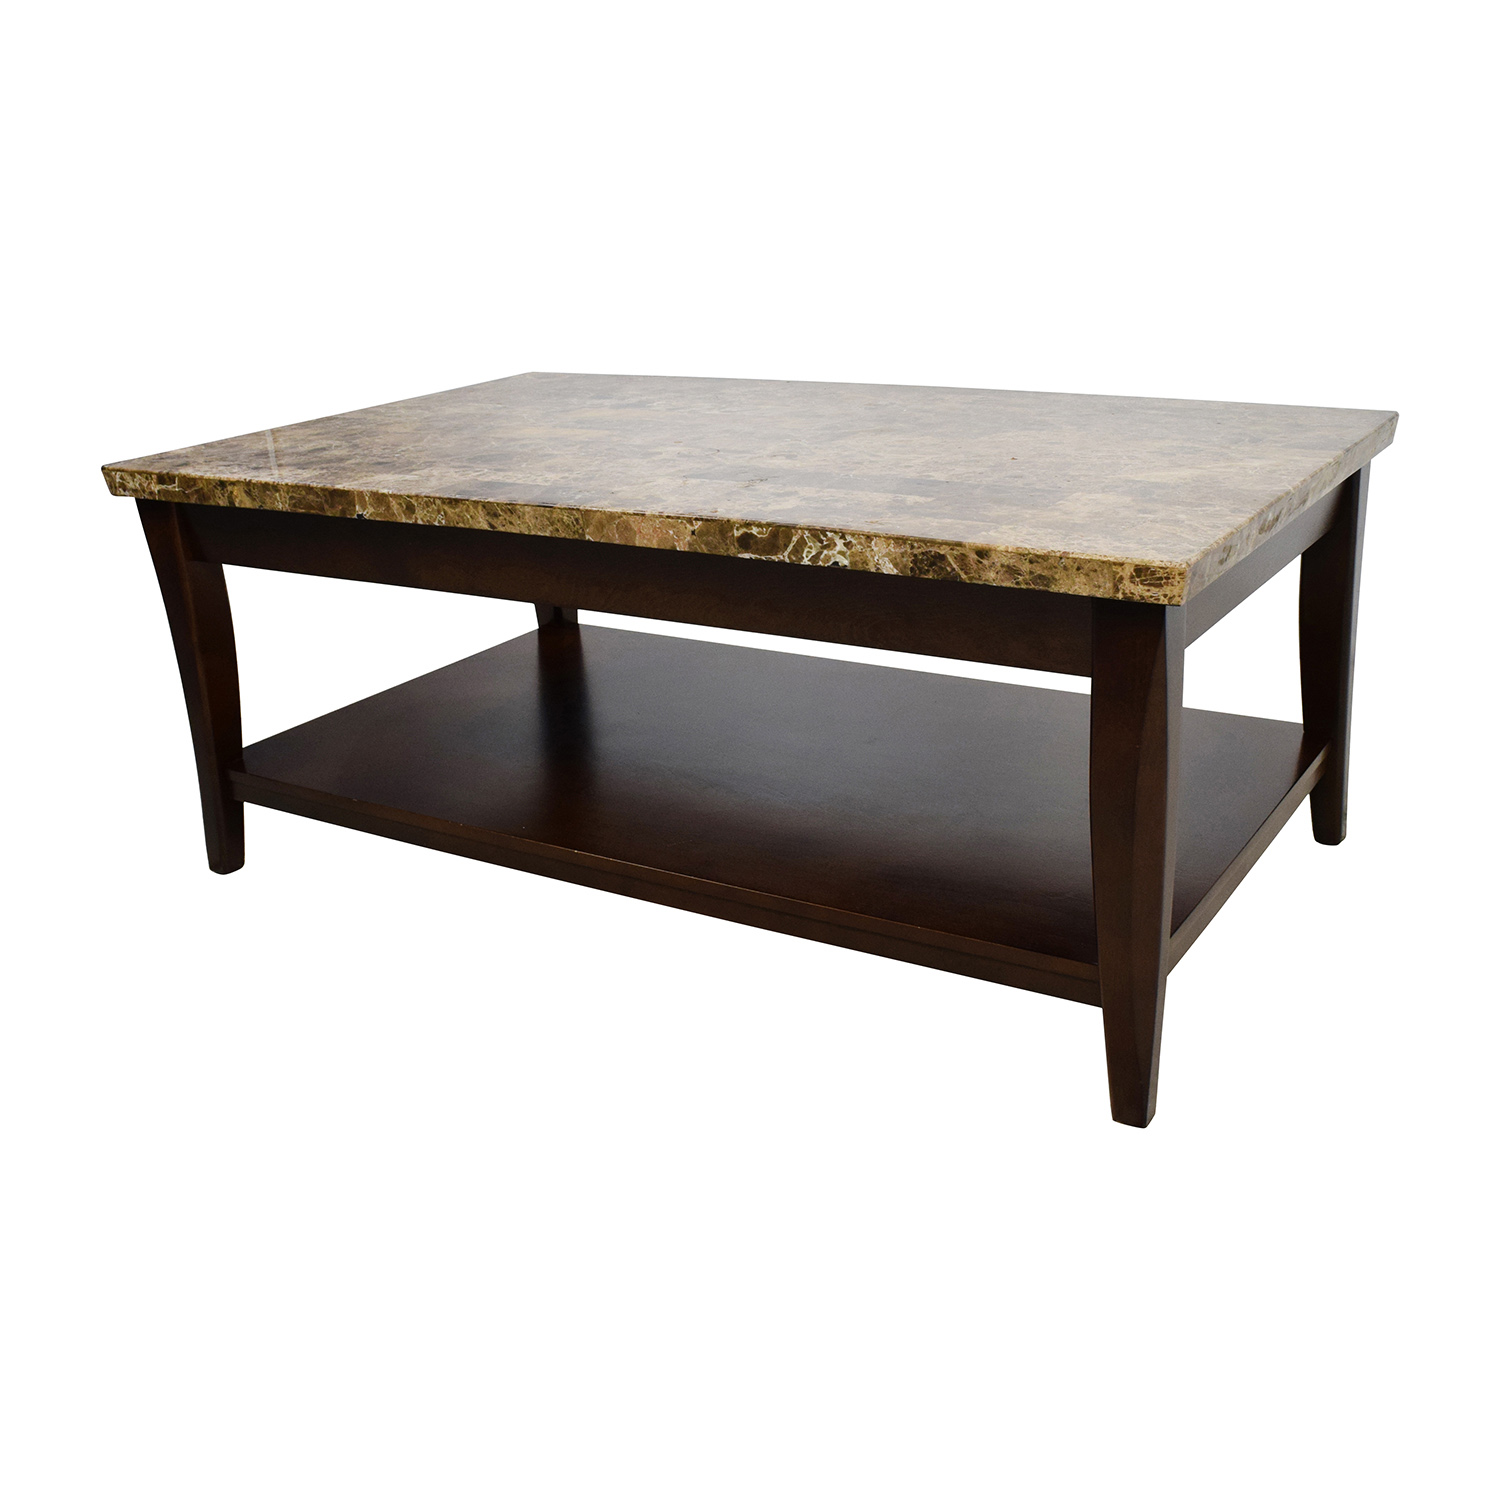 71 off marble and wood coffee table tables for What is a coffee table